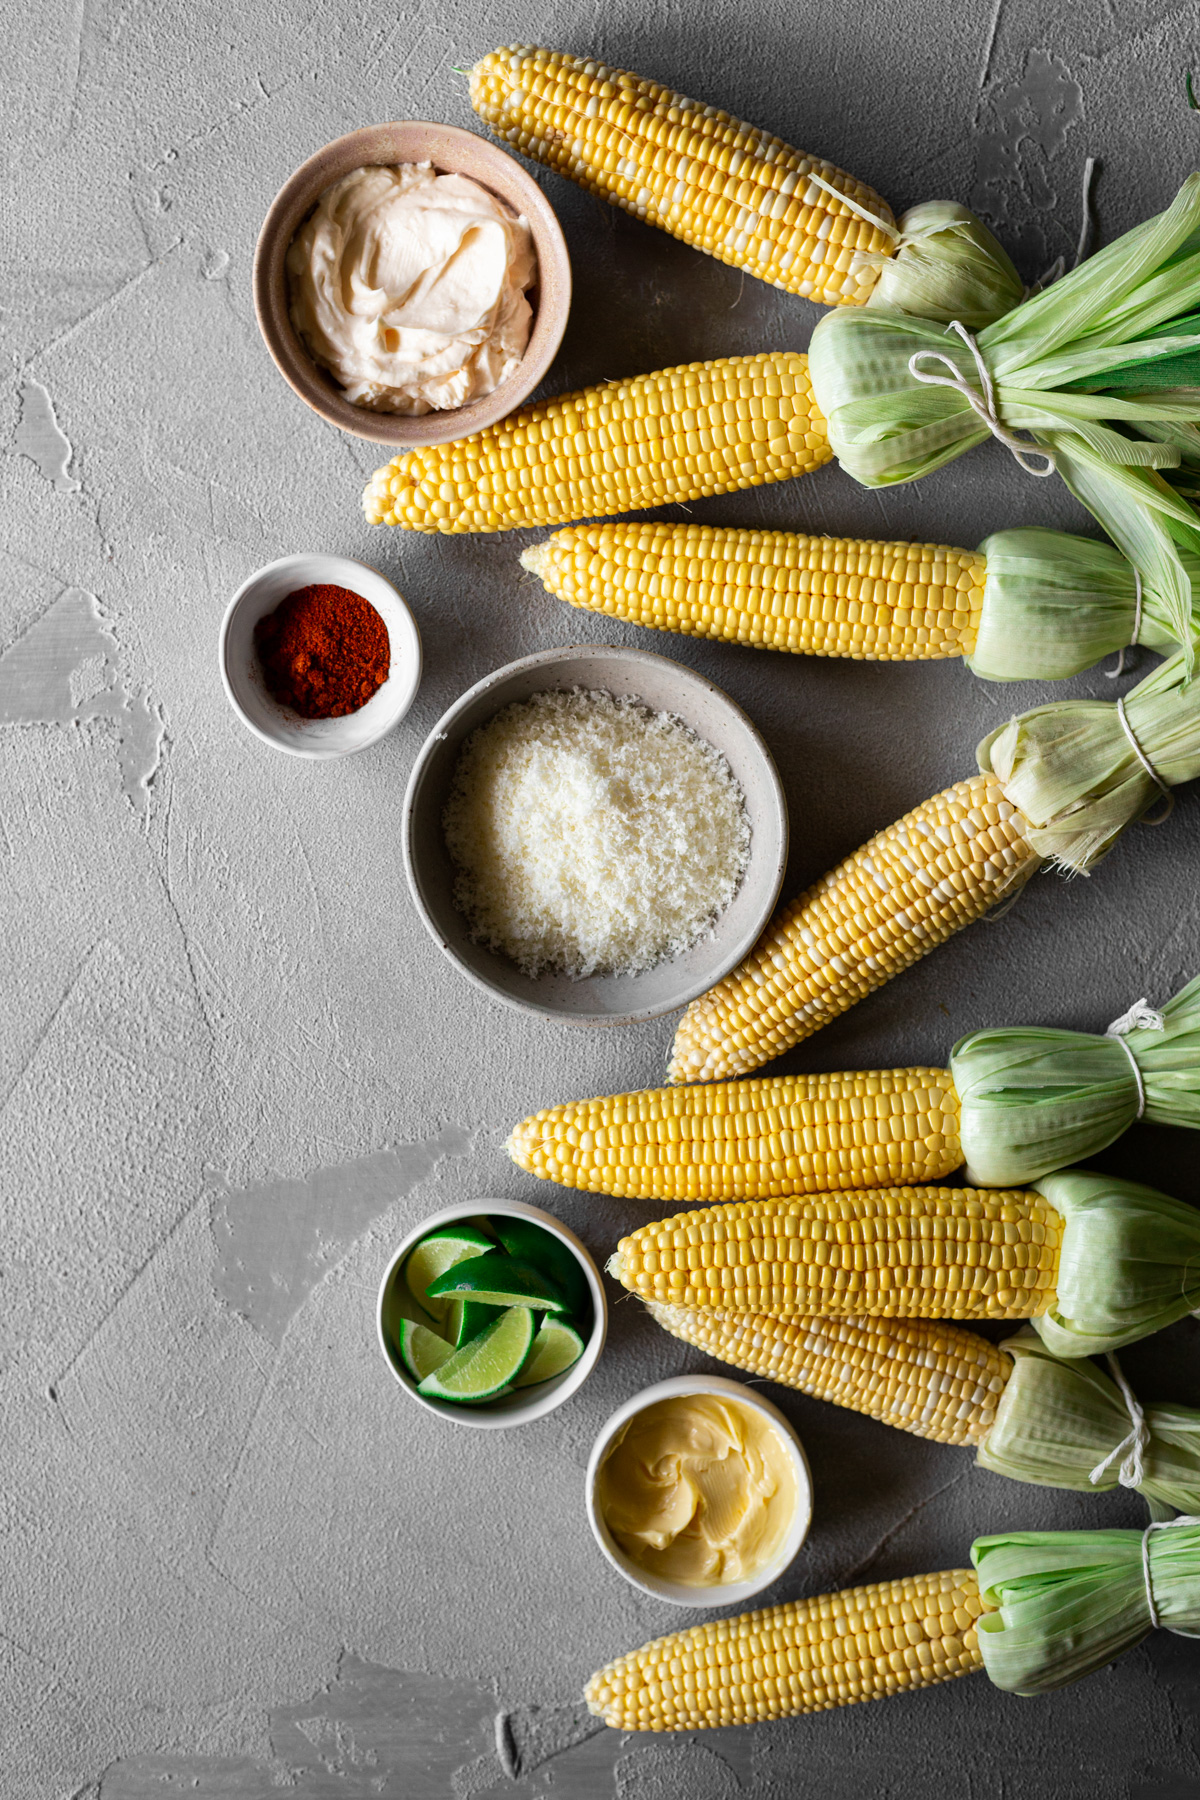 ingredients for mexican street corn: mayo, grated cheese, chili powder, butter, limes